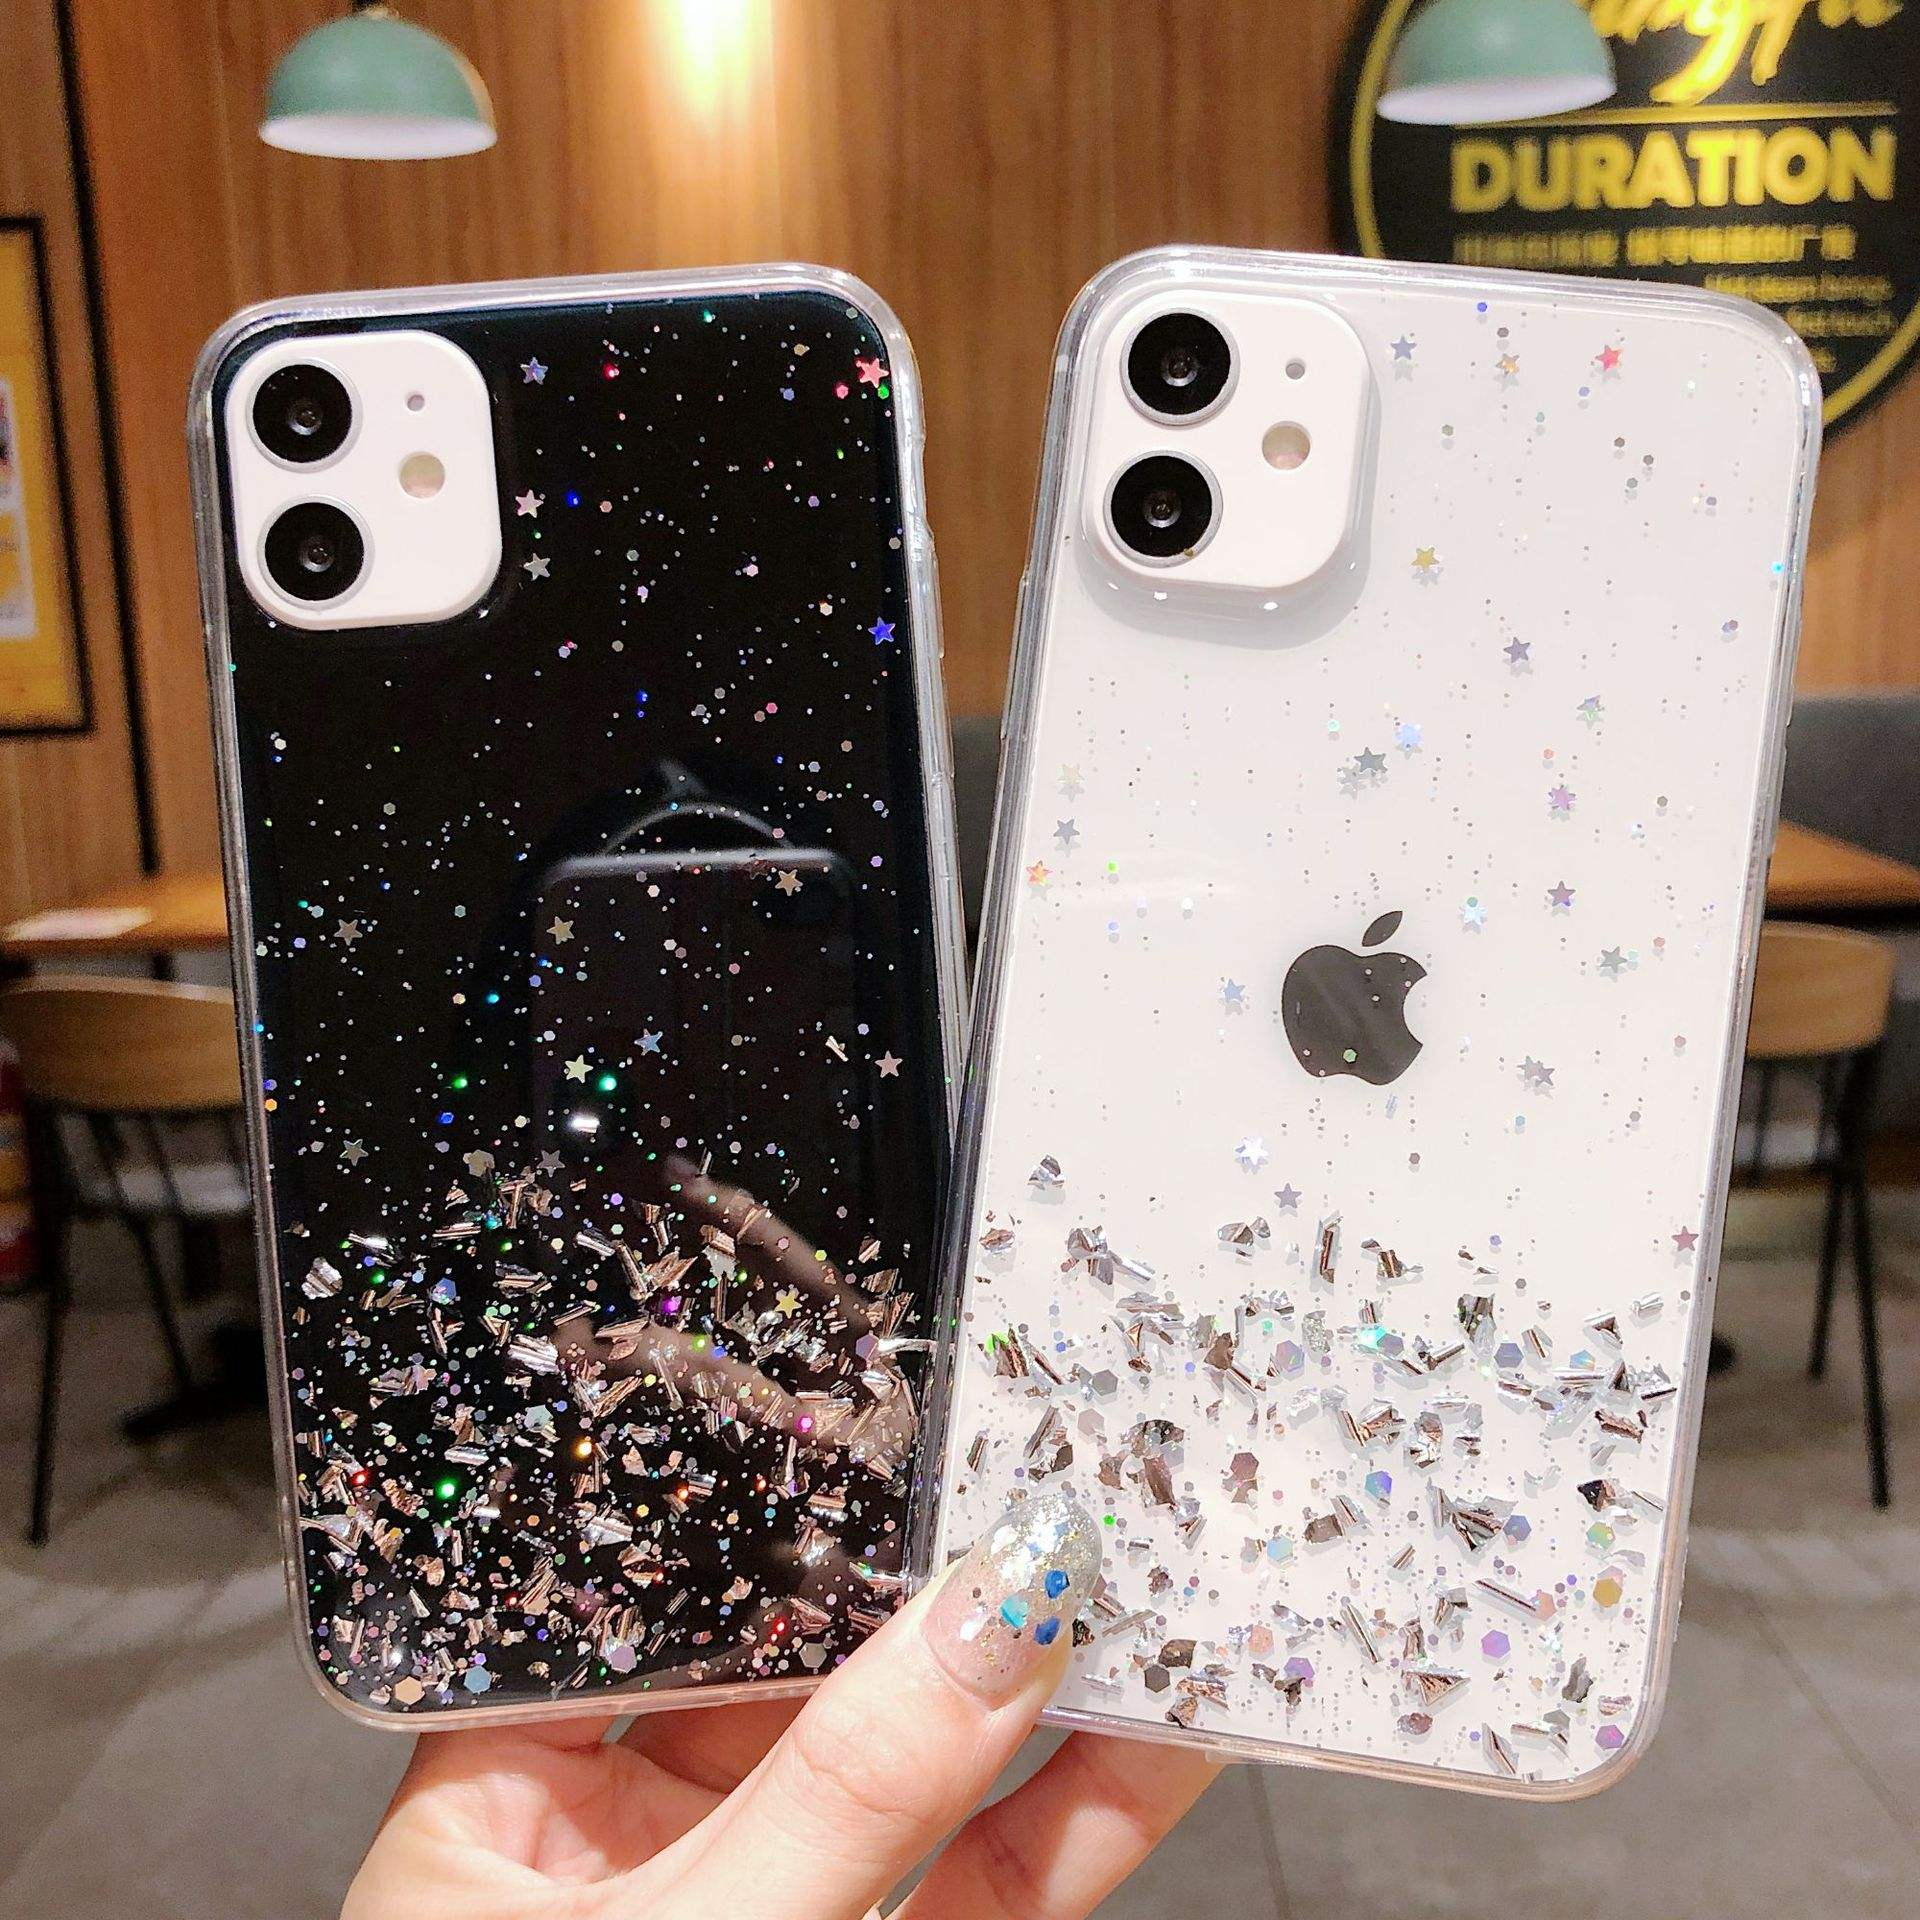 <span class=keywords><strong>Mode</strong></span> Epoxy Shiny Glitter Clear Case Voor Iphone 11 12 Pro Max 6 7 8 Plus Shockproof Girly Vrouwen Case